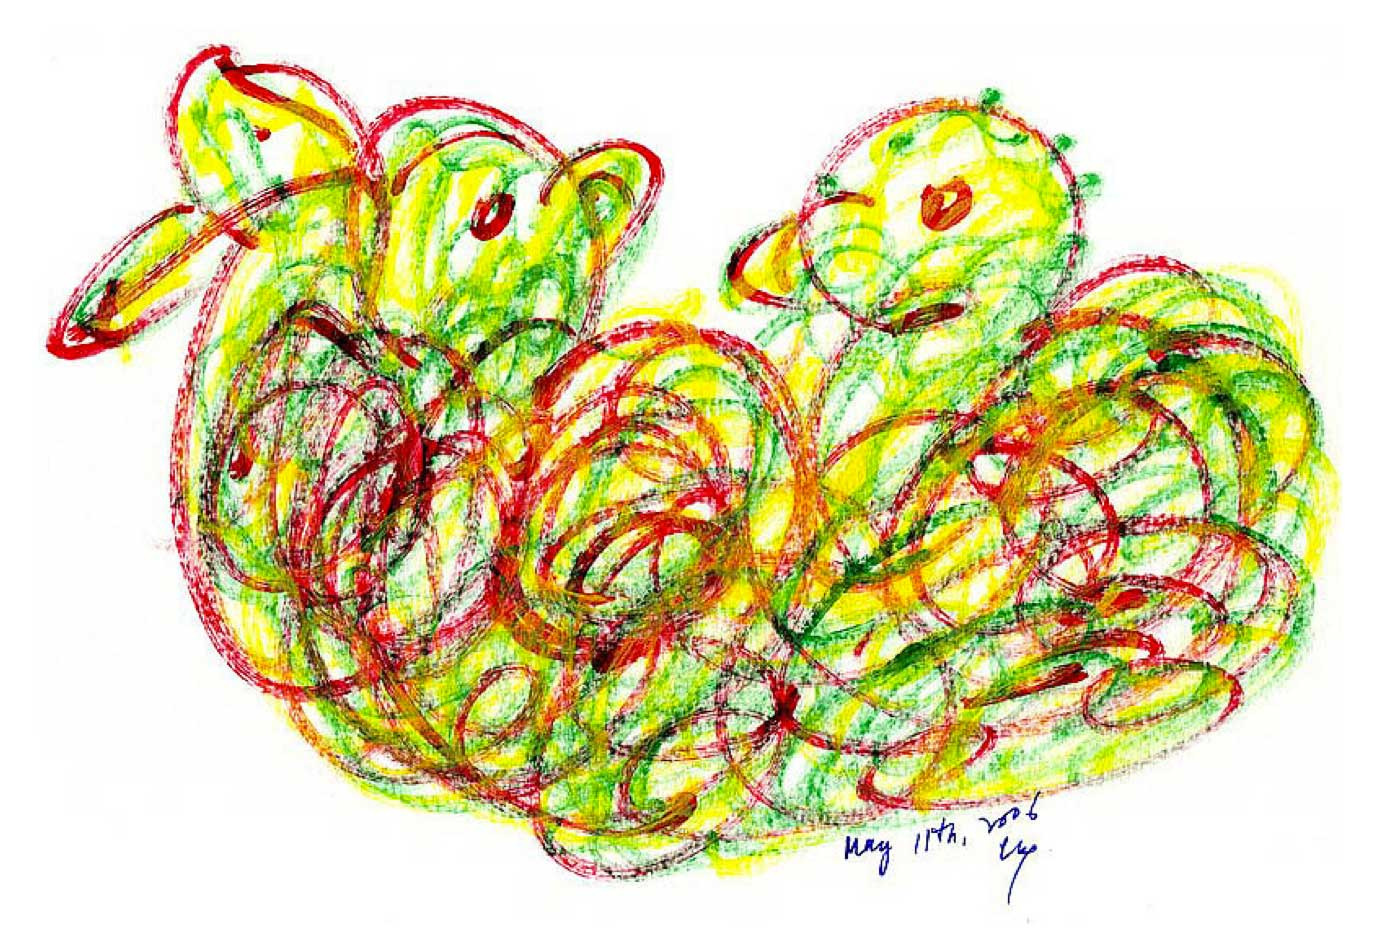 Bird-Drawing-by-Sri-Chinmoy-11-5-2006-7